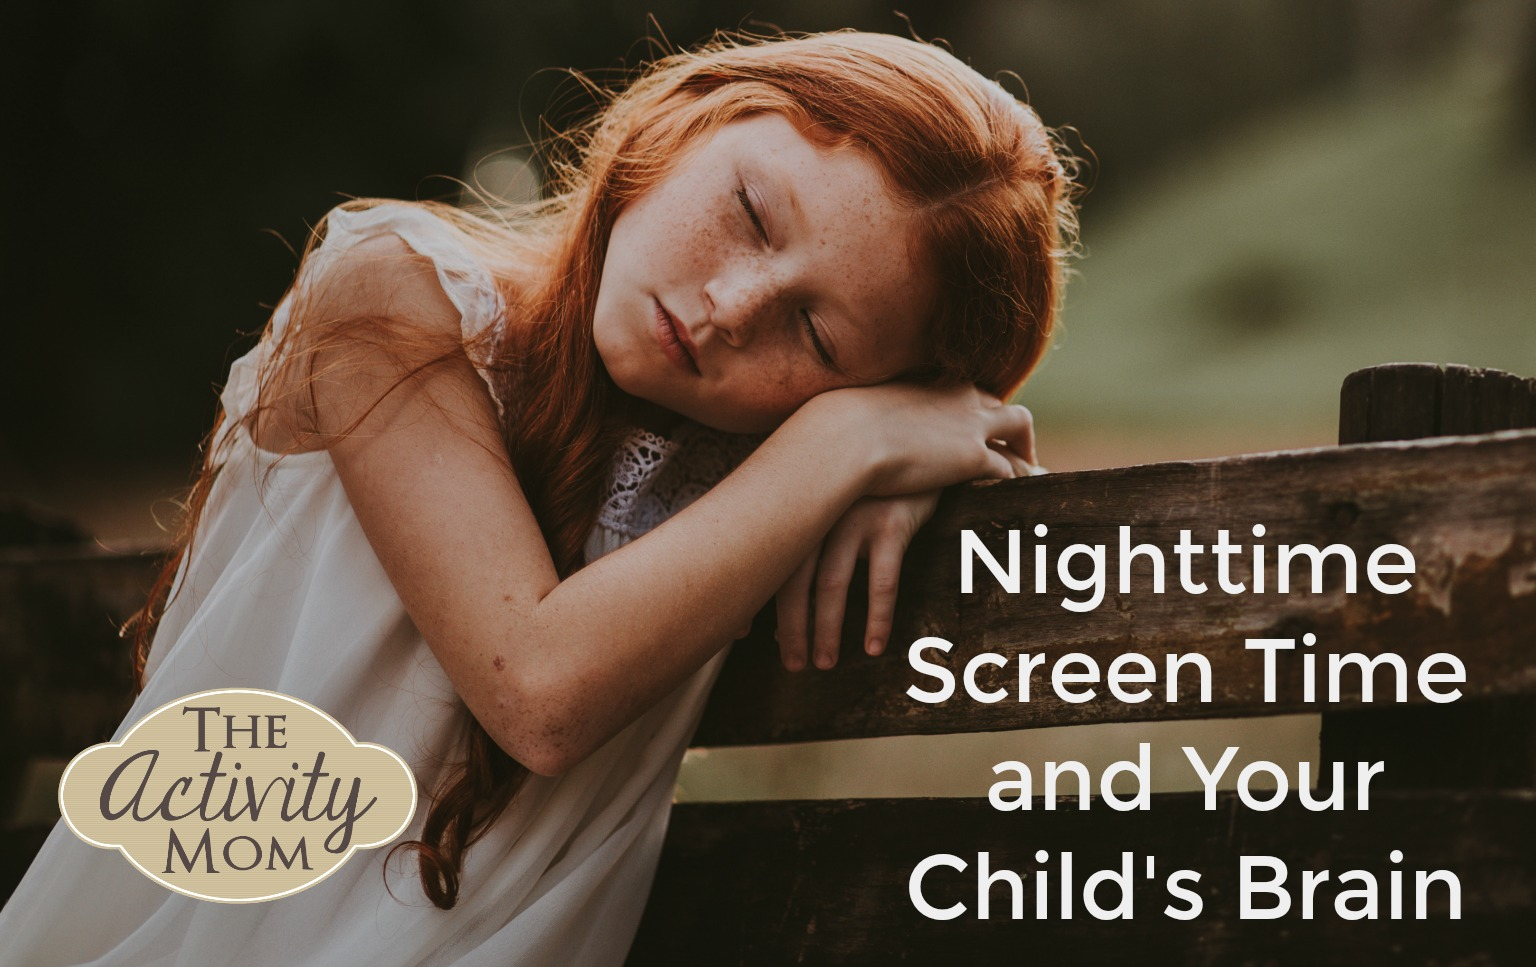 Nighttime Screen Time and Your Child's Brain